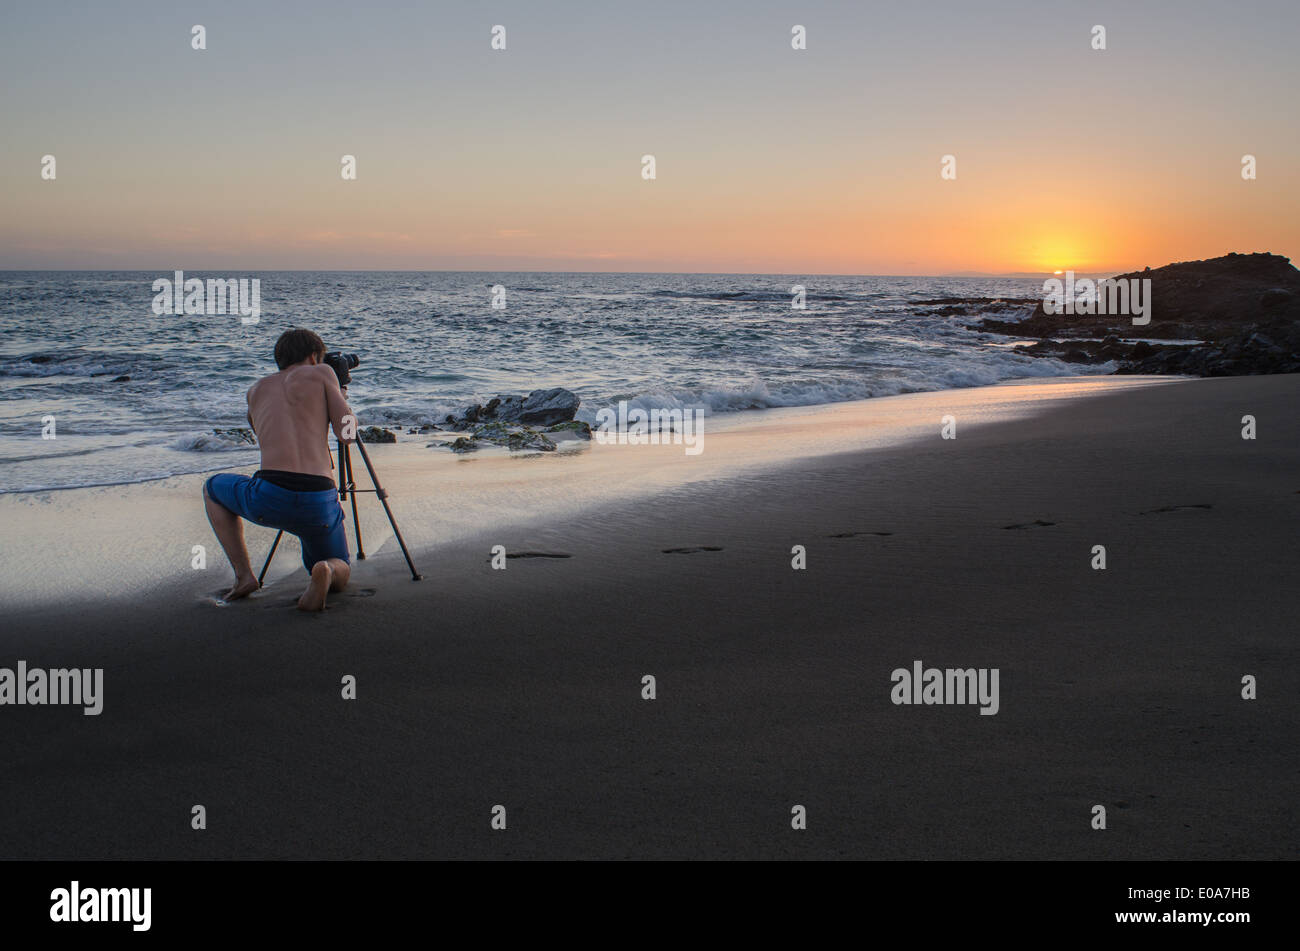 Teenage boy taking photos, Table Rock Beach, Laguna Beach, California, USA - Stock Image